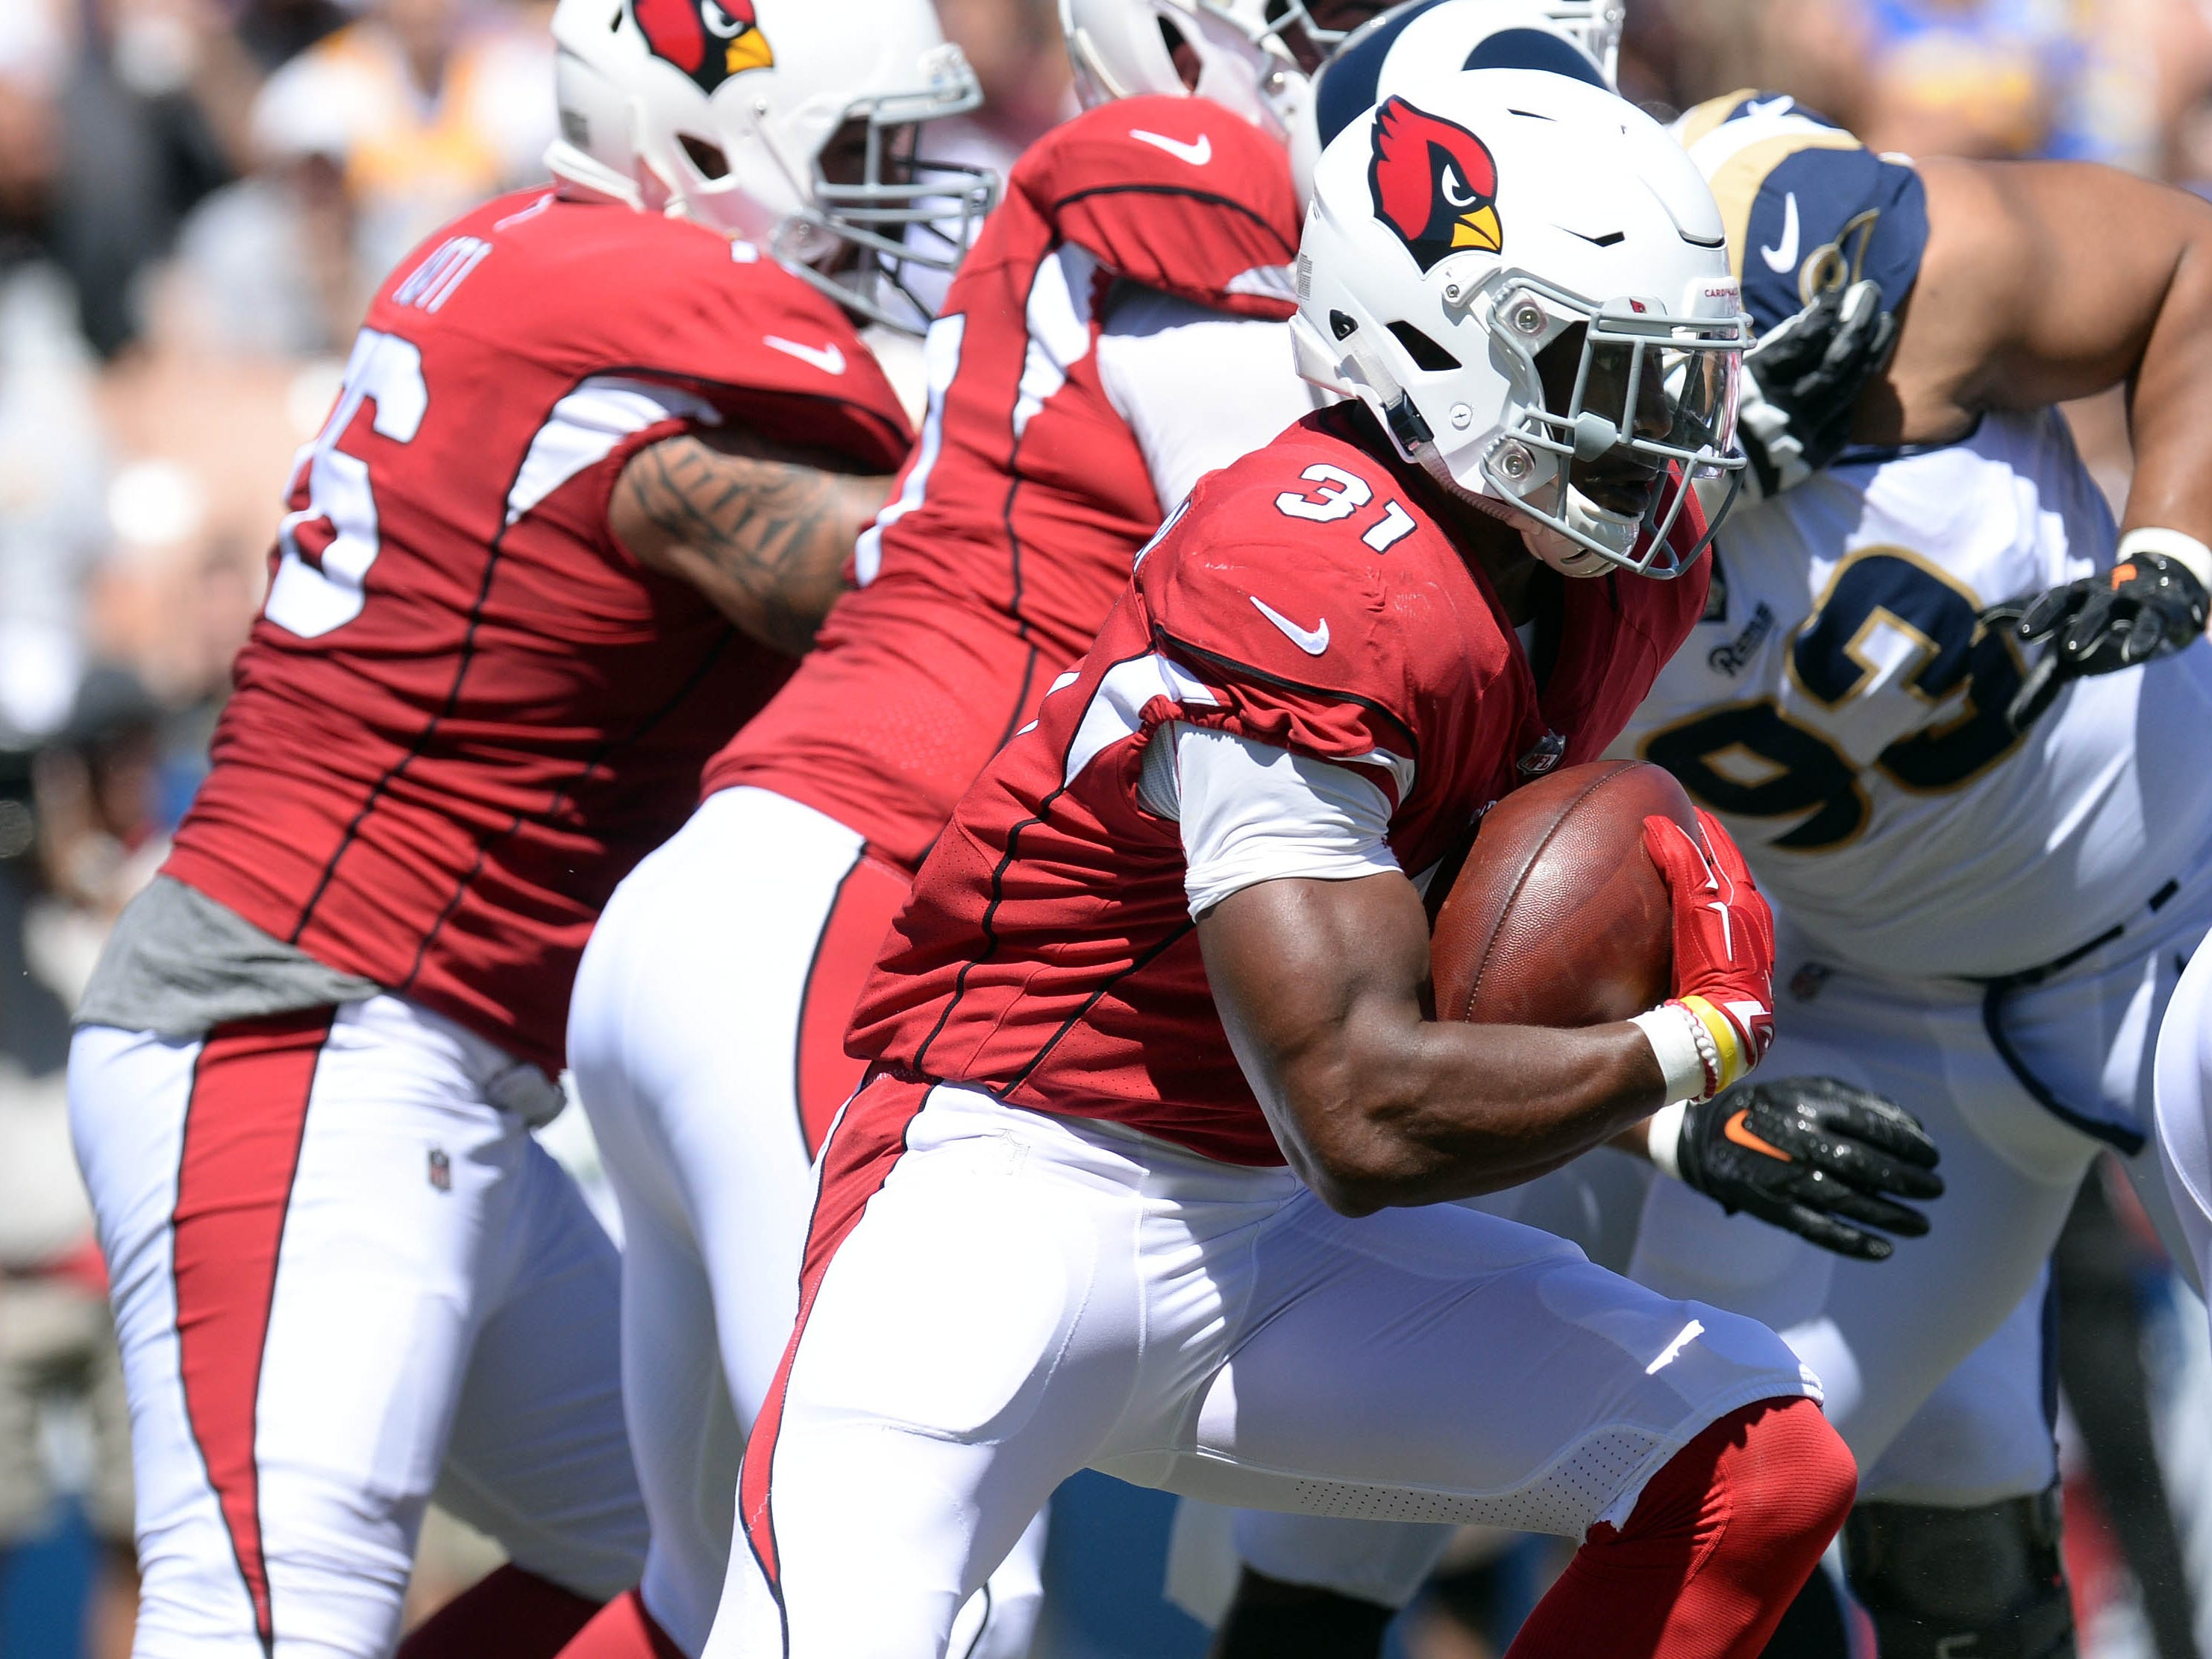 September 16, 2018; Los Angeles, CA, USA; Arizona Cardinals running back David Johnson (31) runs the ball against the Los Angeles Rams during the first half at the Los Angeles Memorial Coliseum. Mandatory Credit: Gary A. Vasquez-USA TODAY Sports